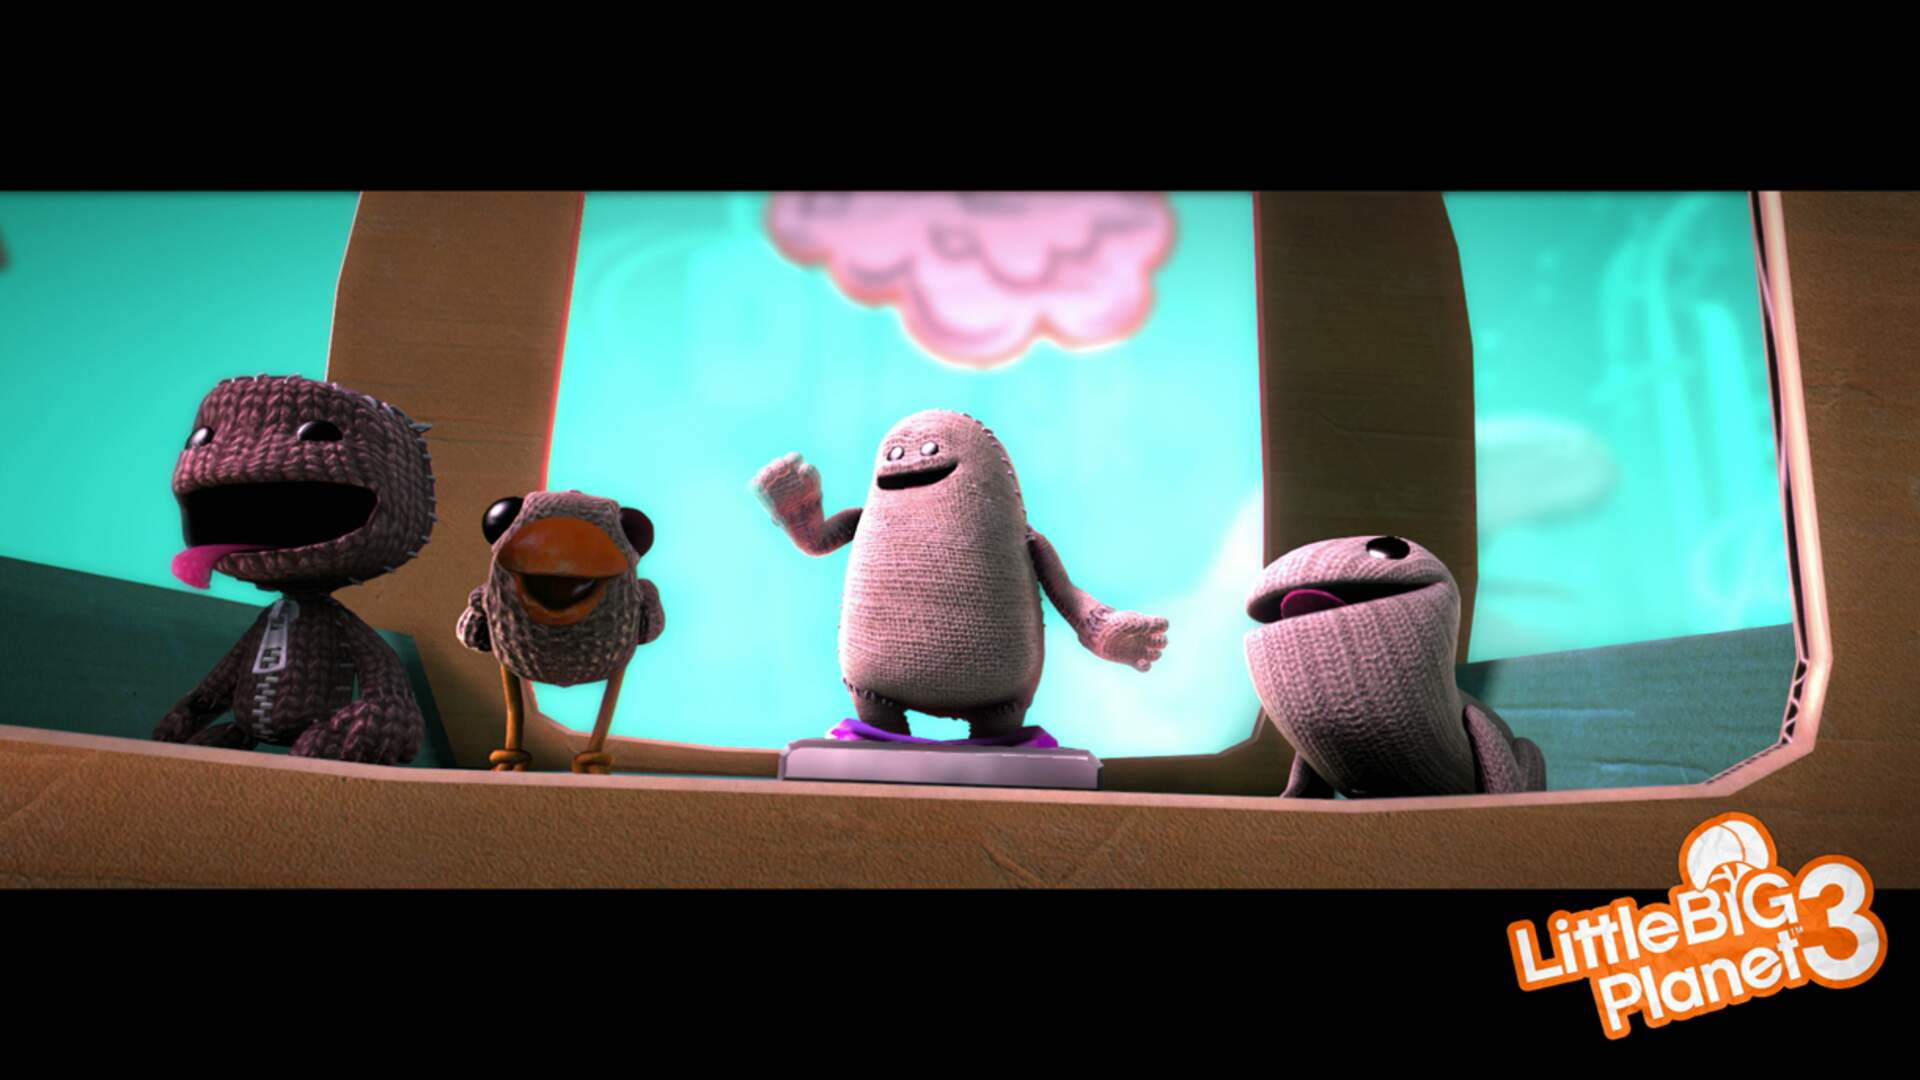 LittleBigPlanet 3 PS4 Review: Sharper, More Dynamic, Less Floaty - and Bags of Fun